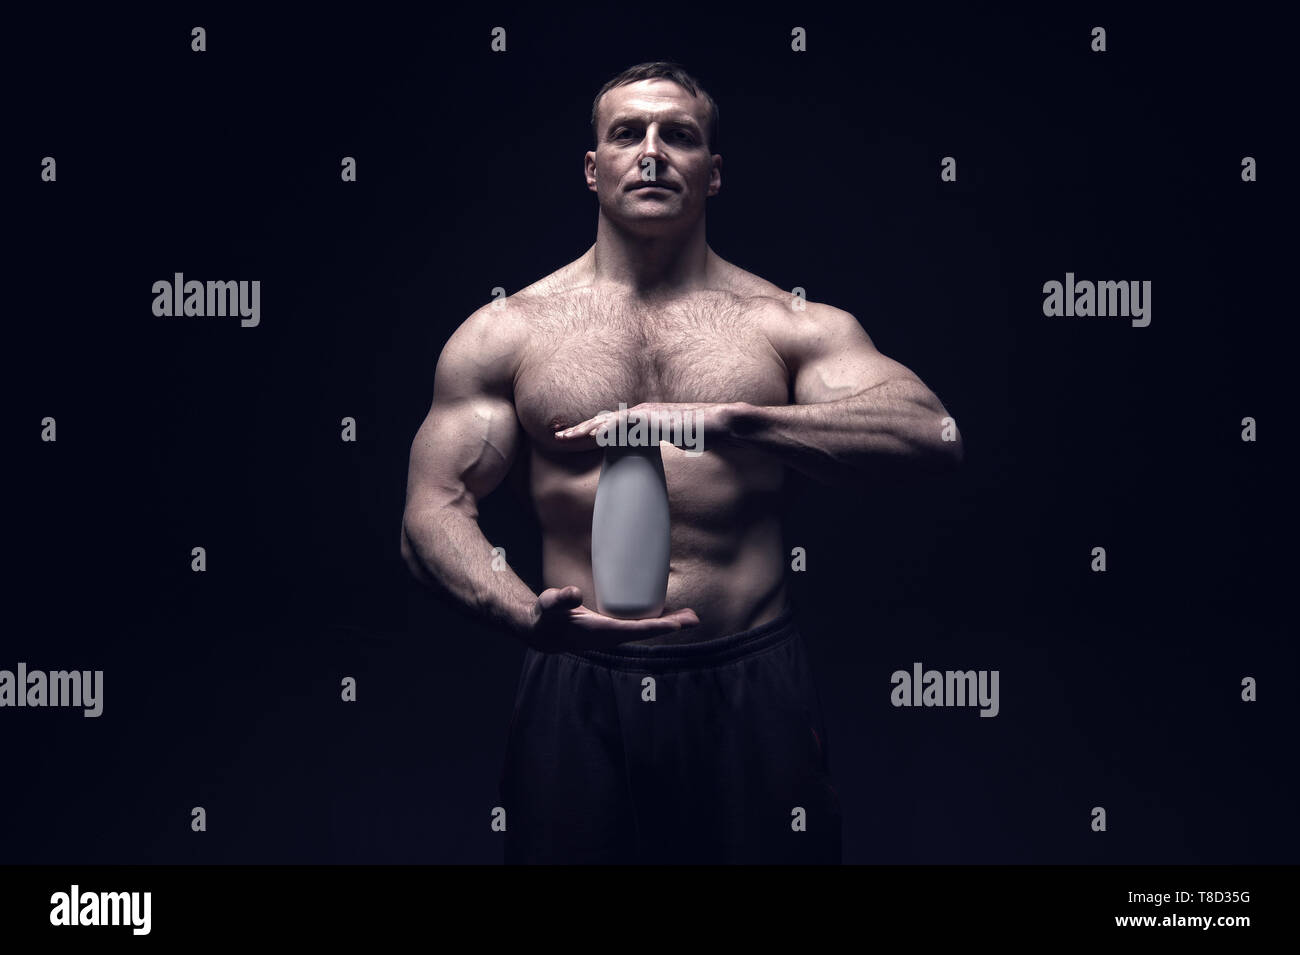 Bodybuilder hold shampoo or gel bottle. Man athlete with fit torso and ab. Bodycare and hygiene for sportsman. Spa bath or shower cosmetic after training in gym  - Stock Image